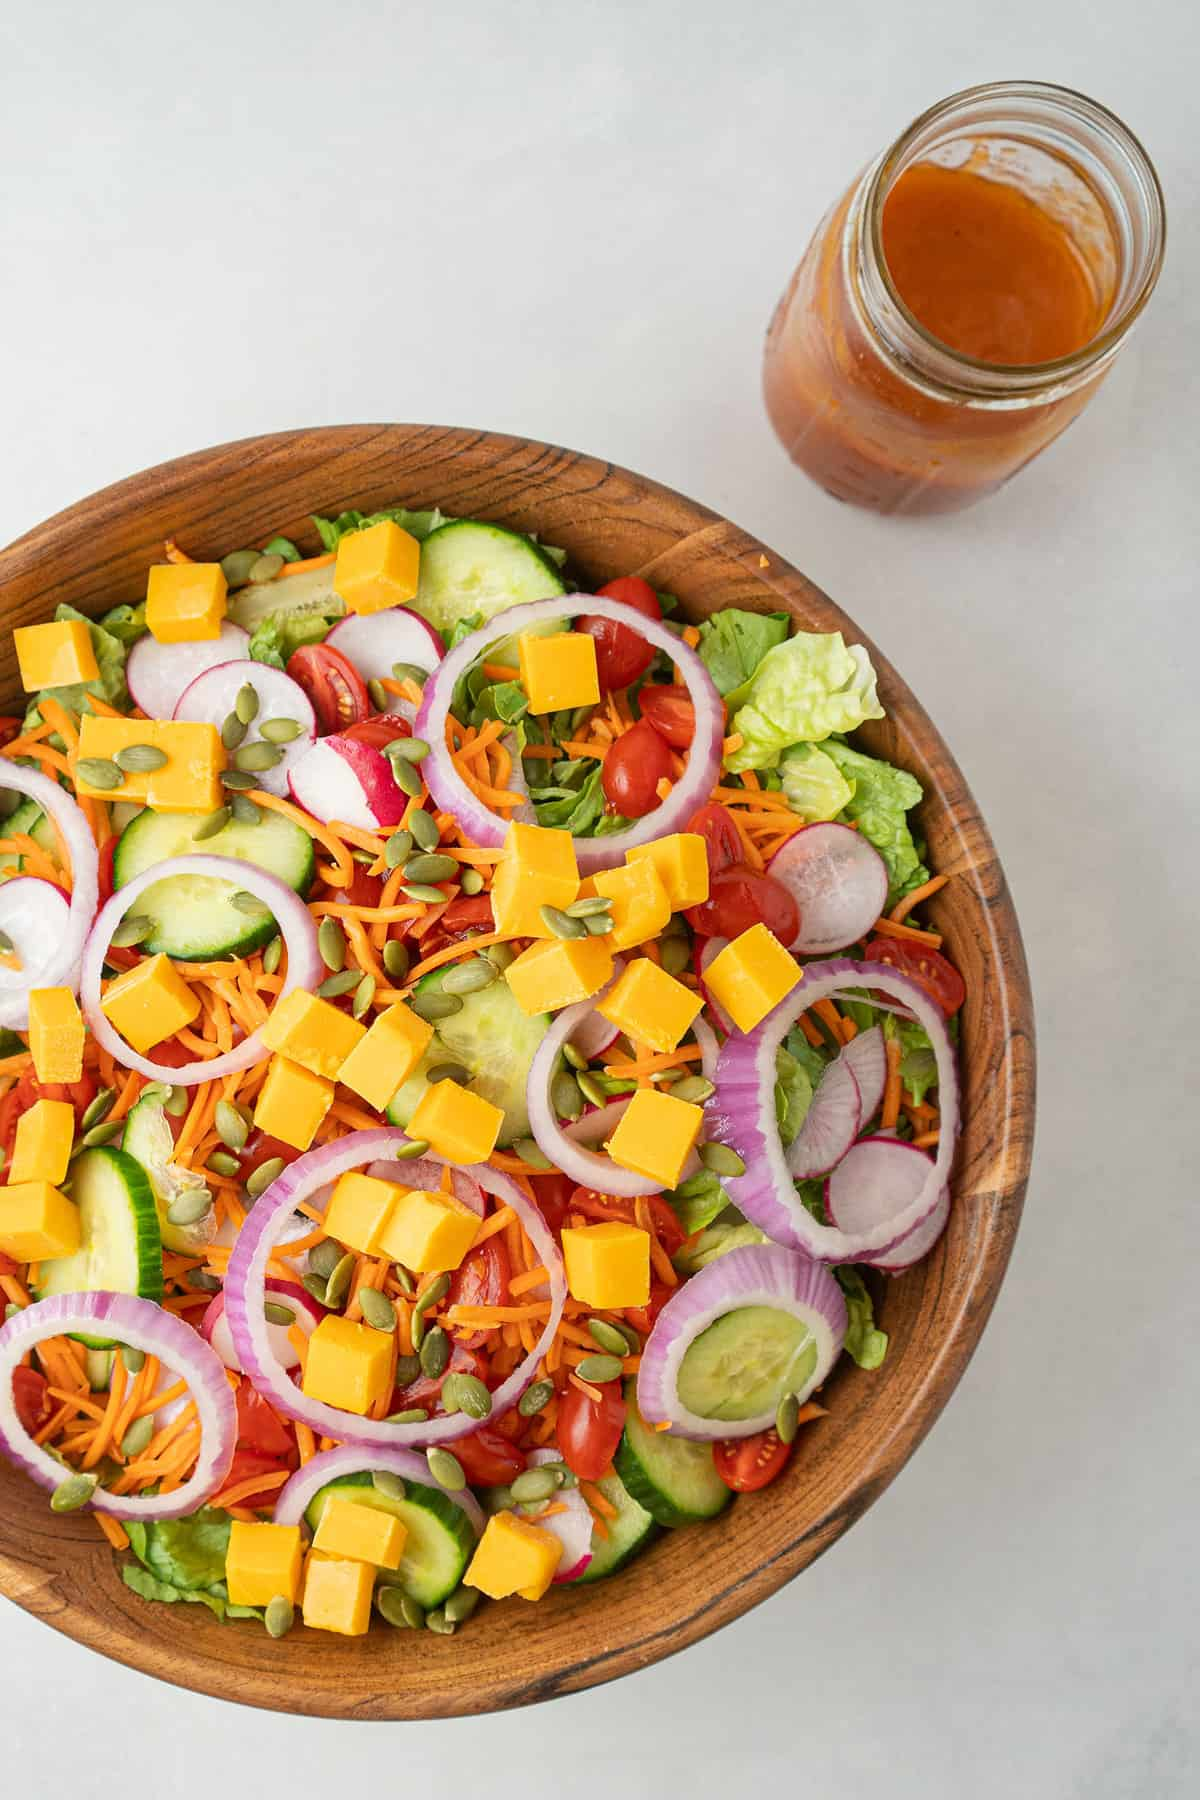 Tossed Salad in a wooden bowl with French dressing